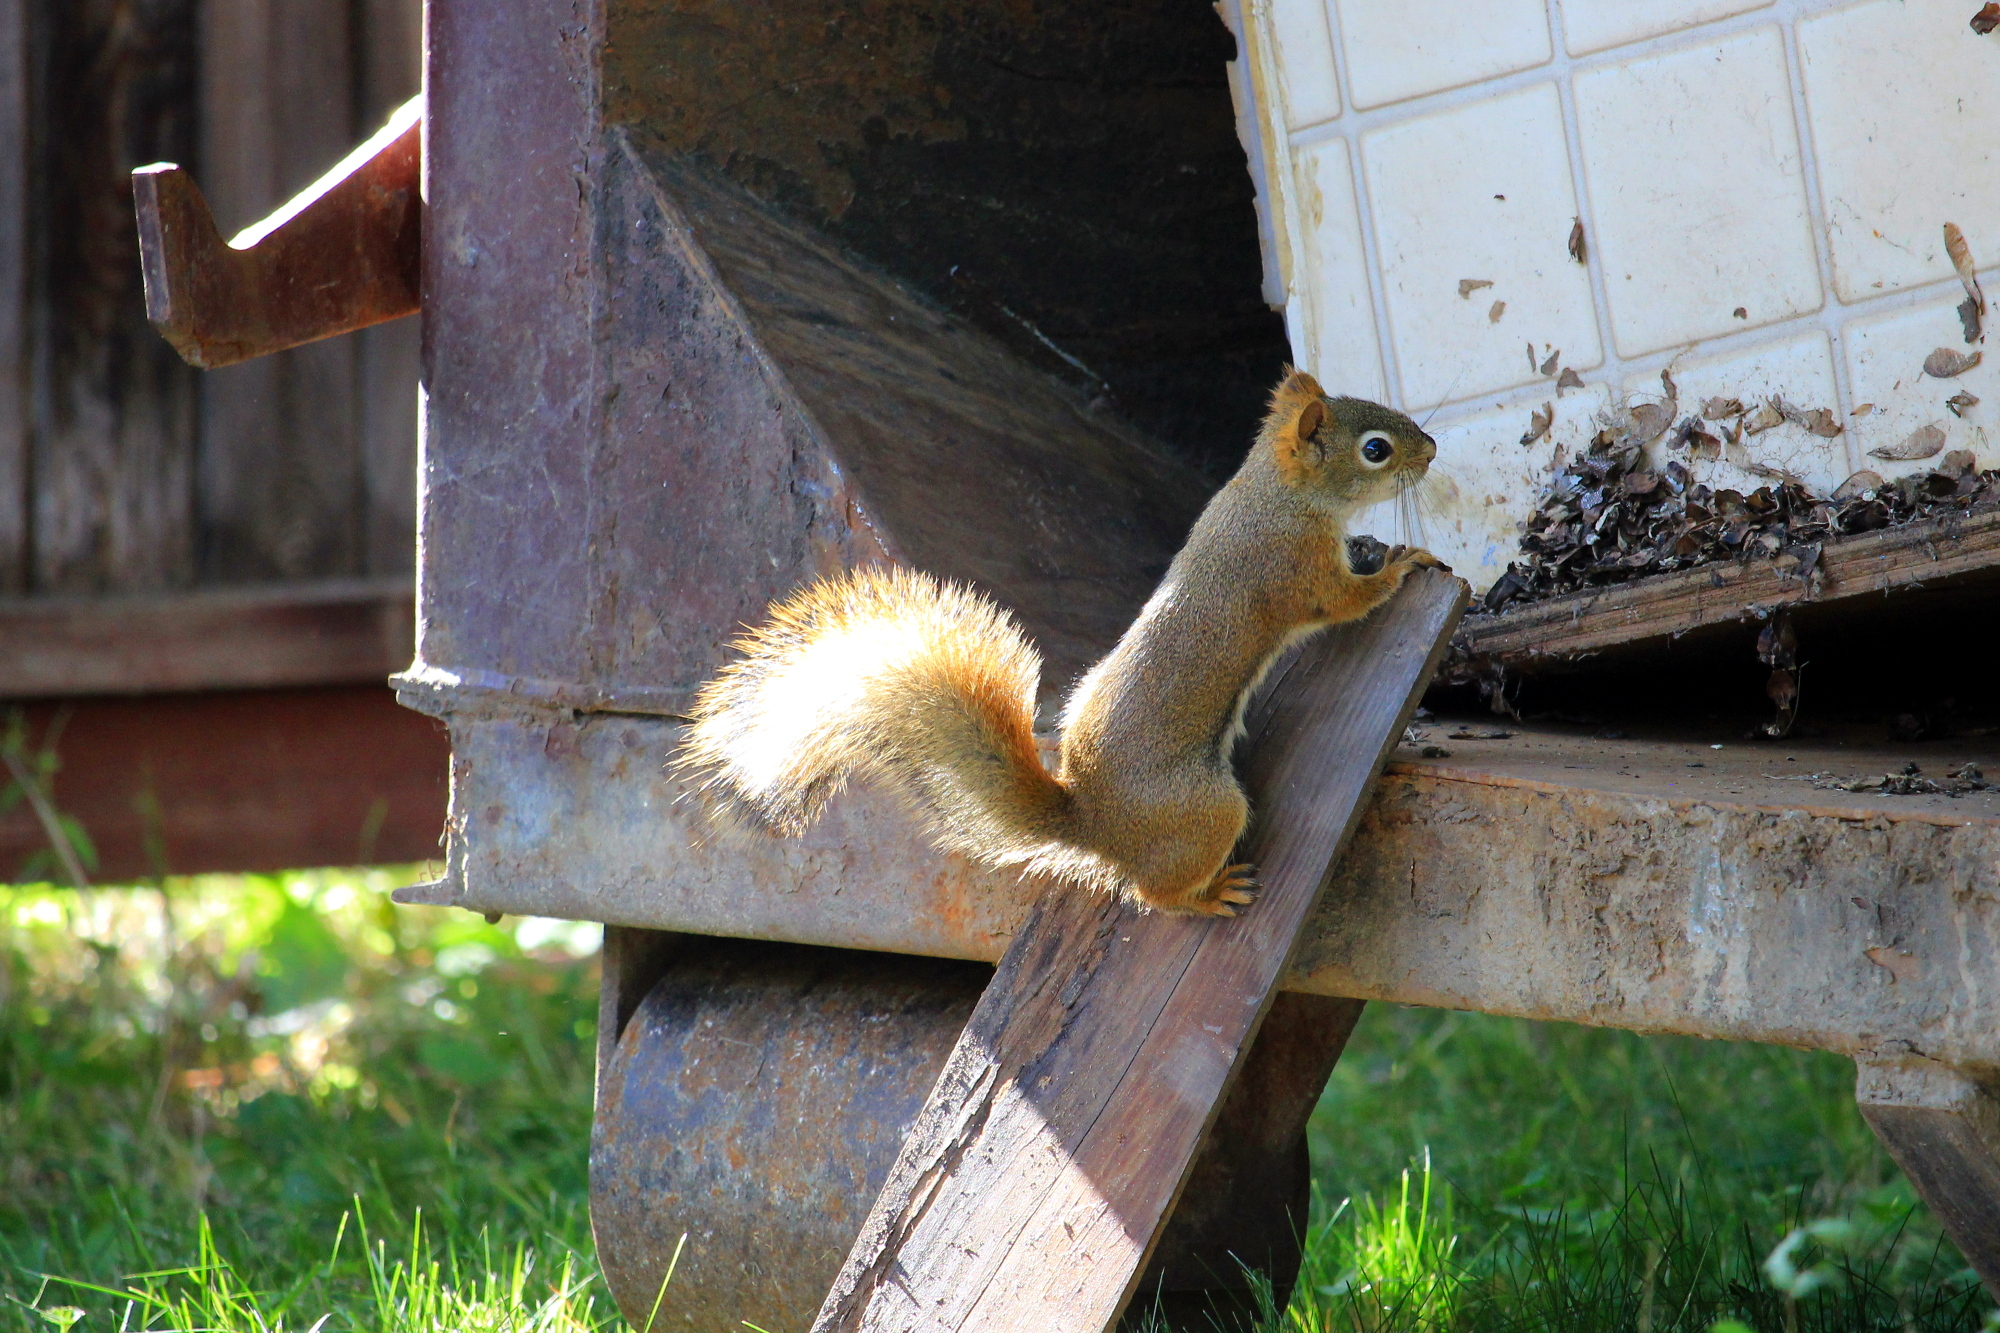 The squirrel checks out the dumpster